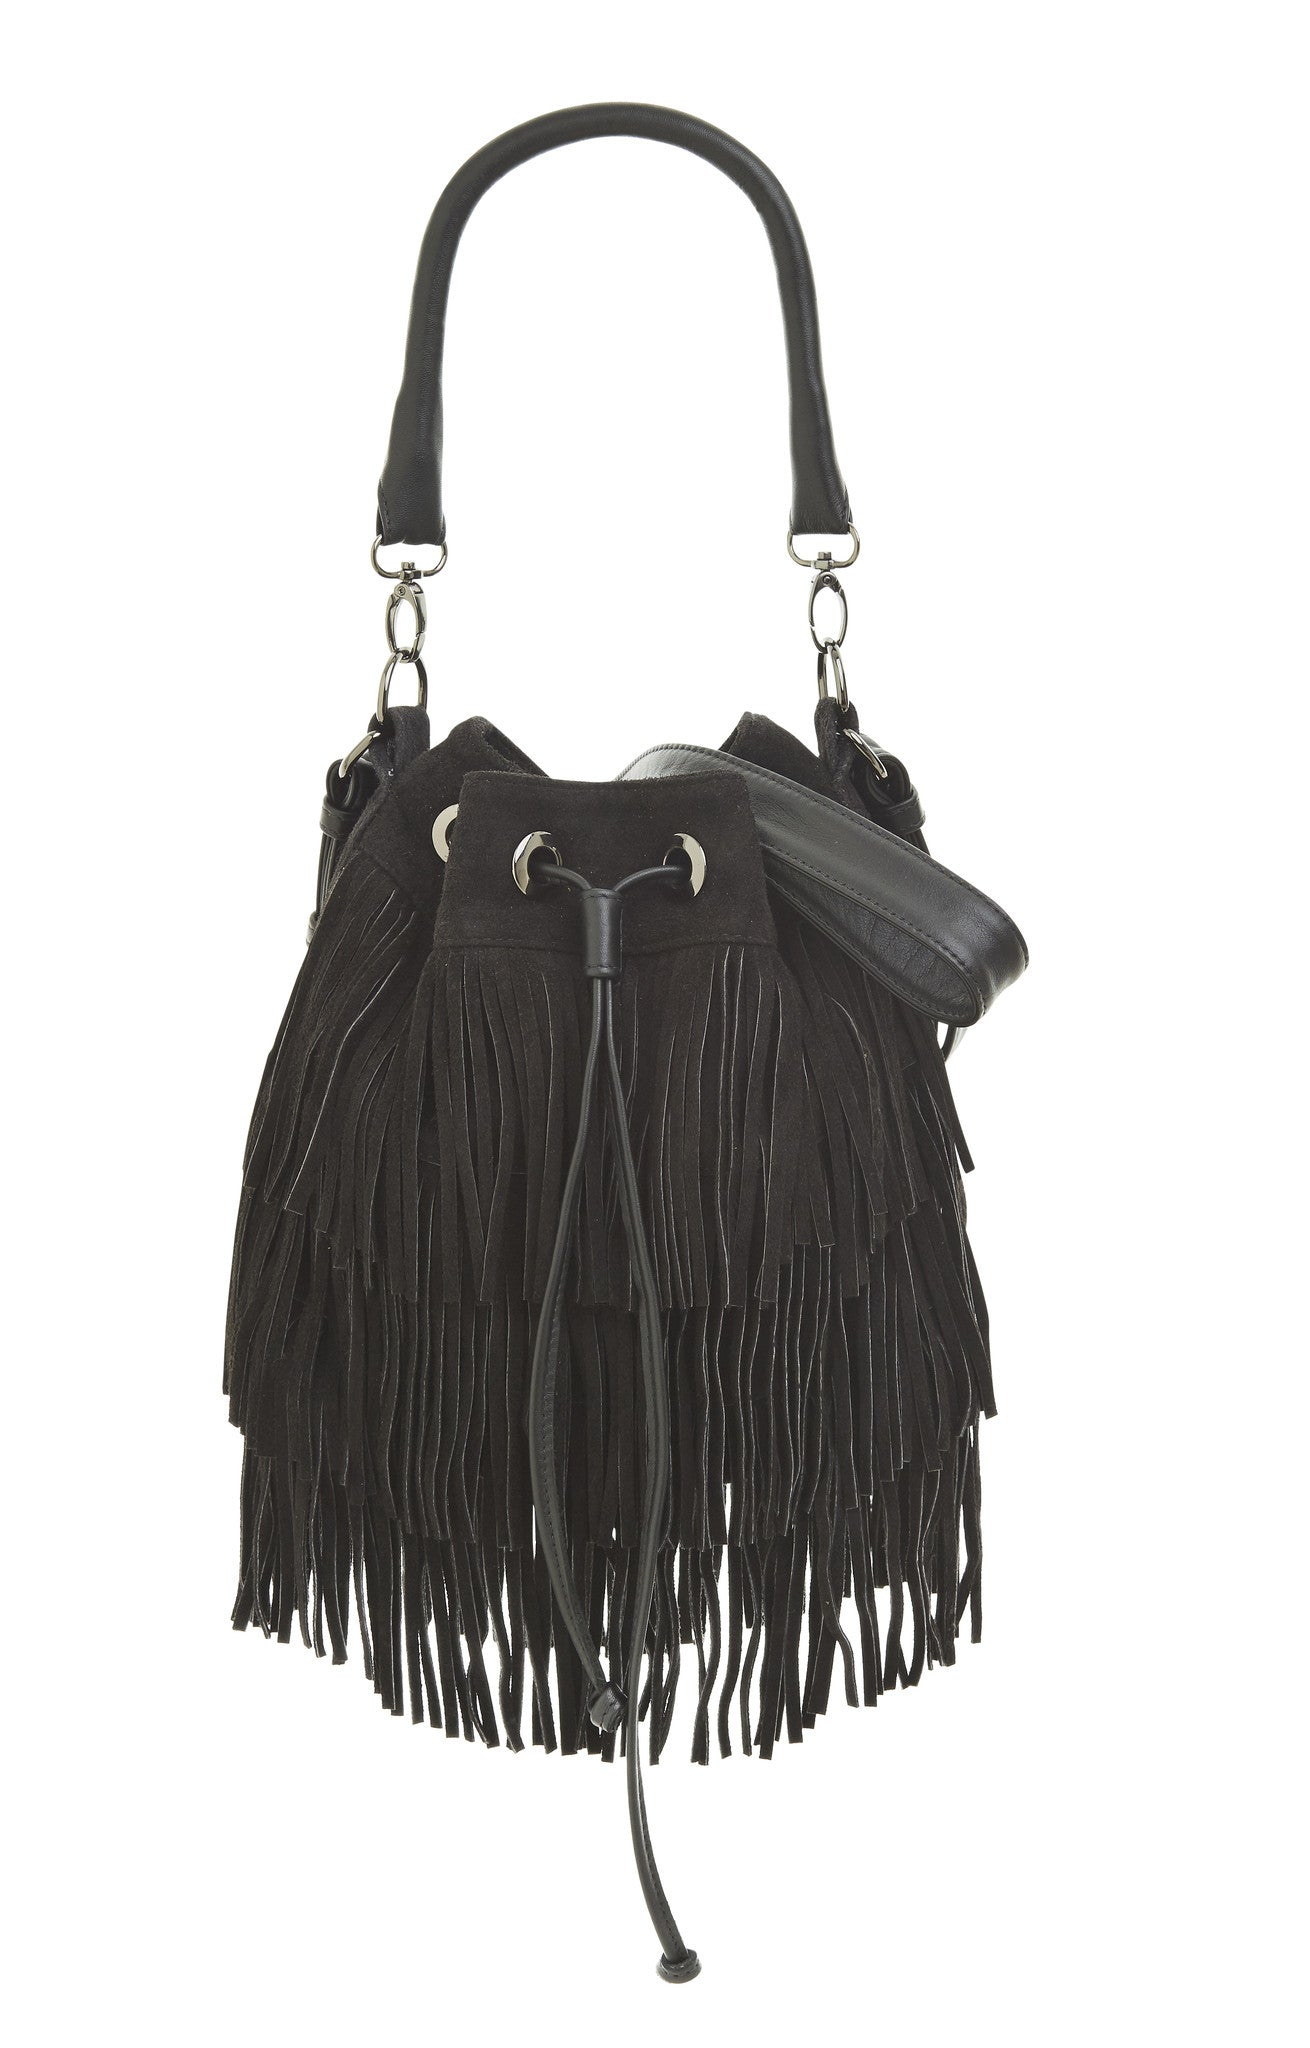 Frances Fringed Bucket - black suede